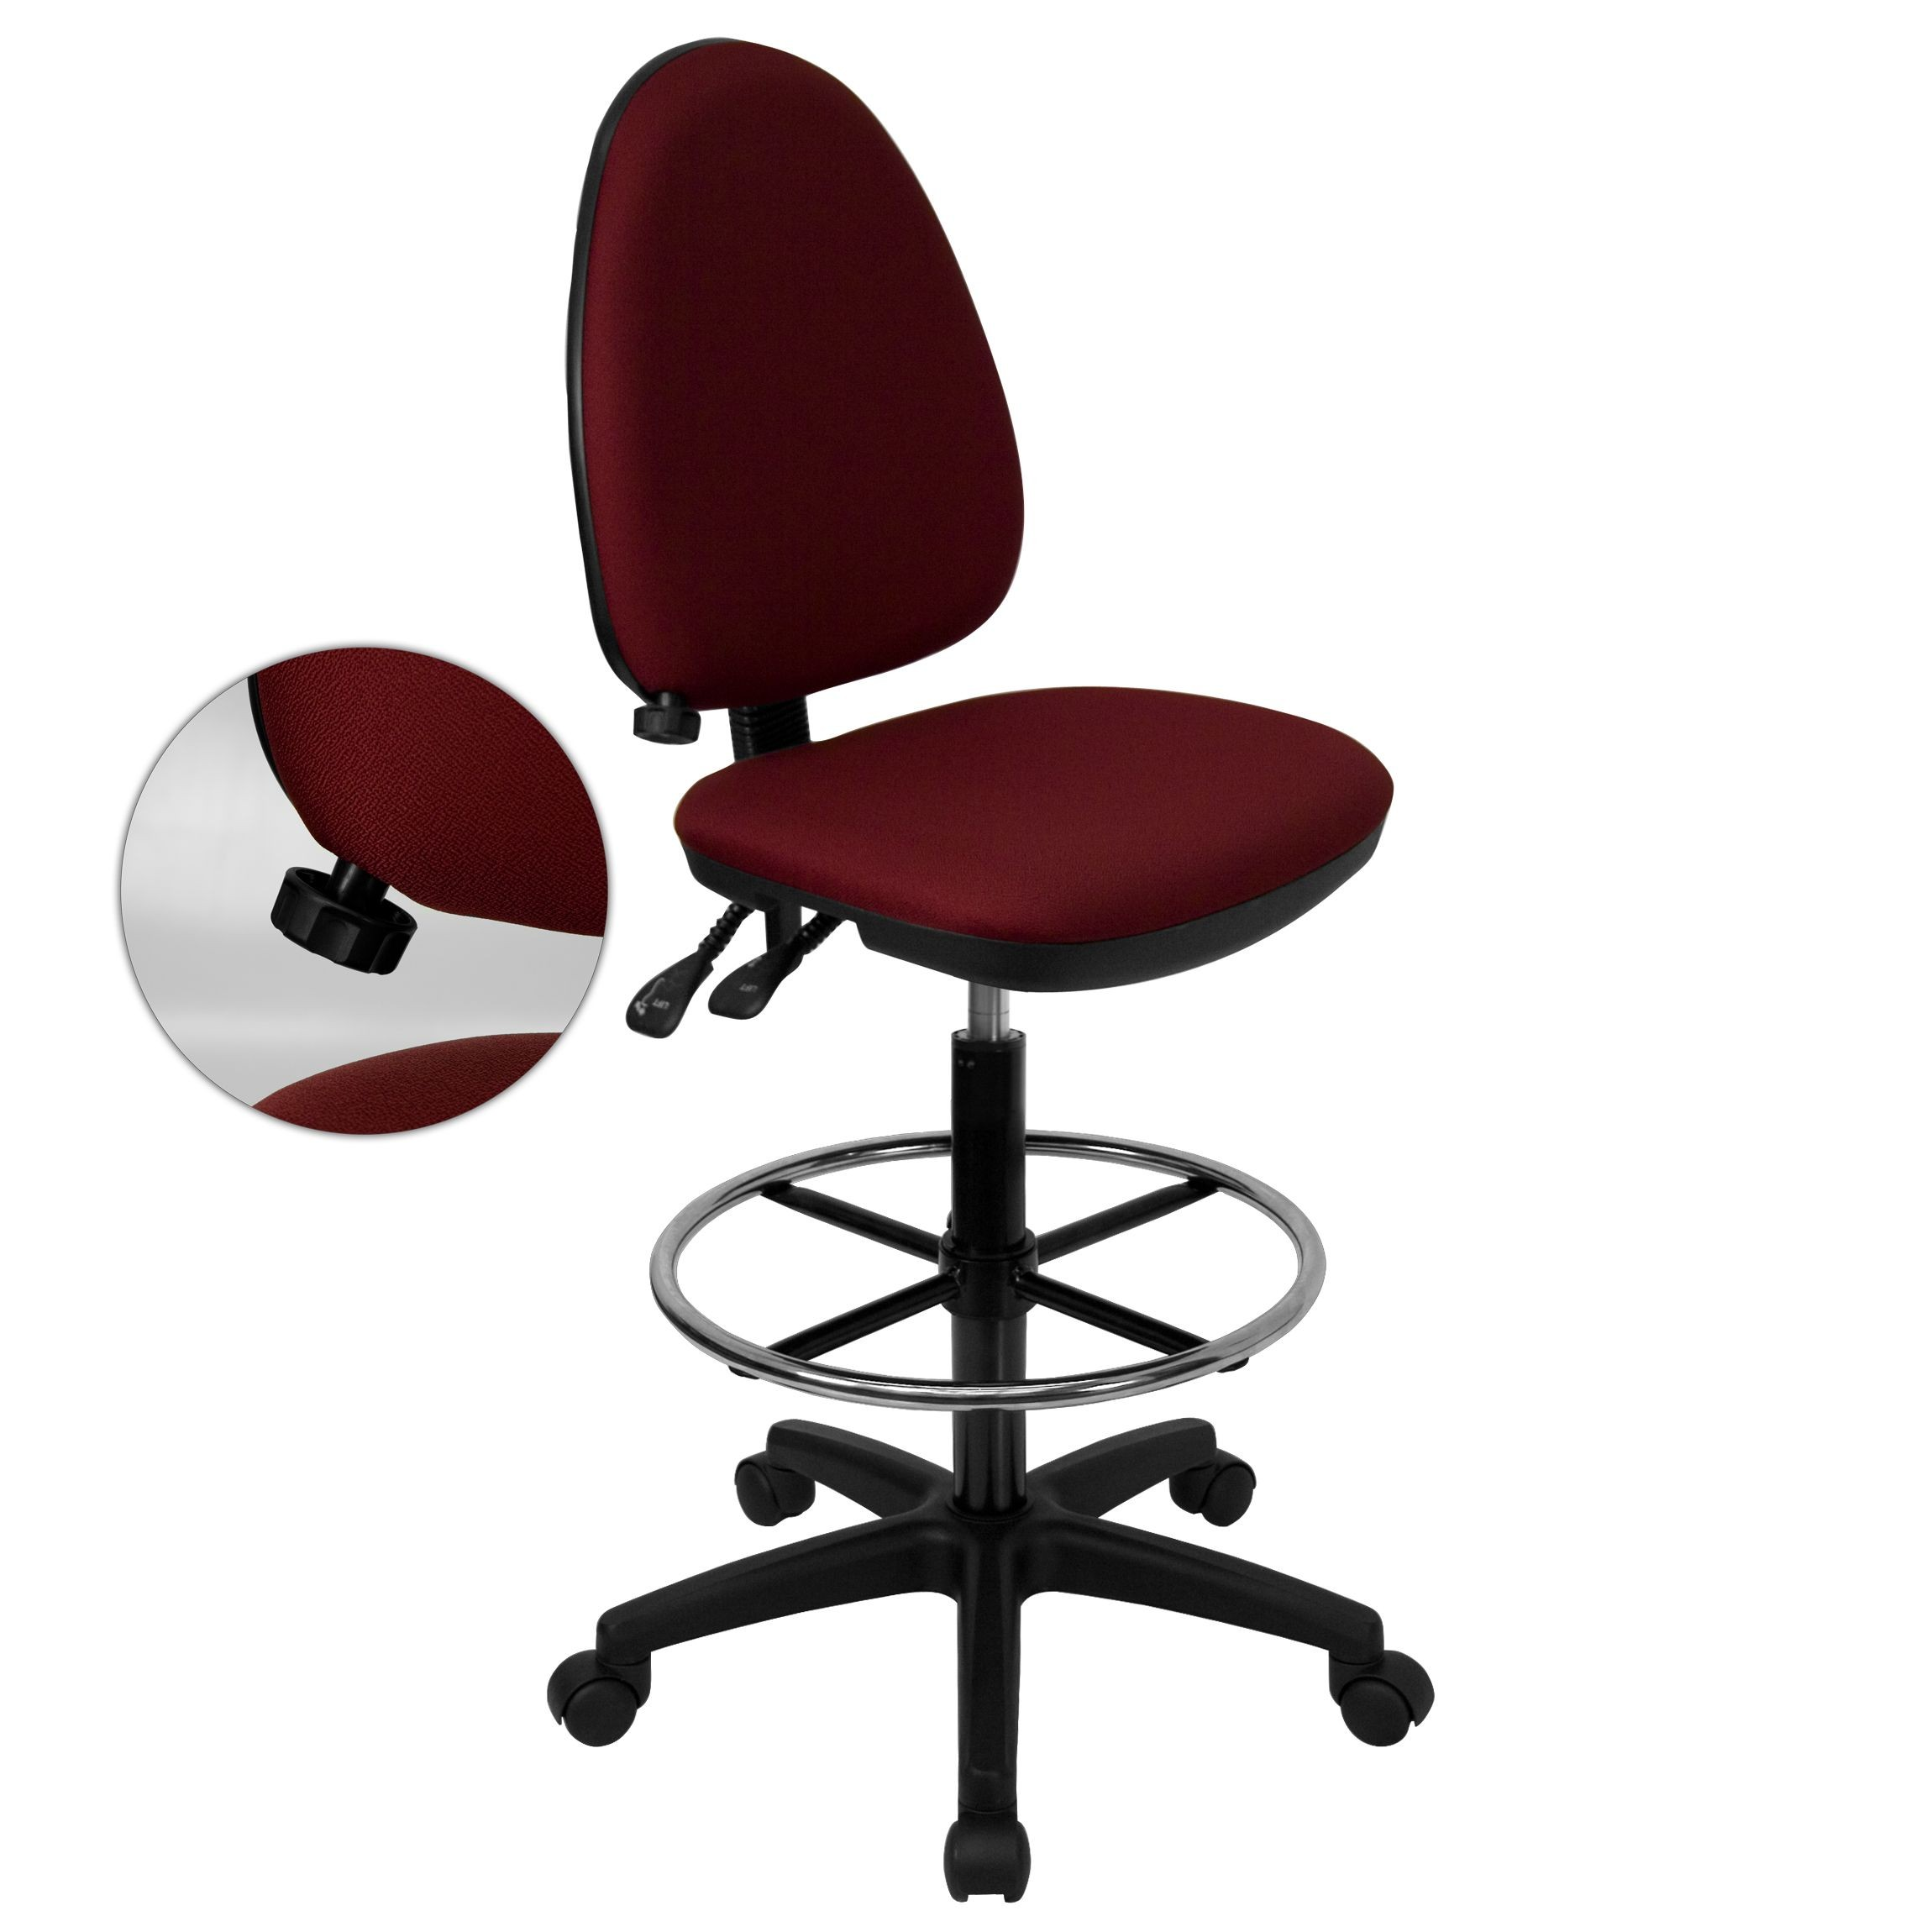 Flash Furniture WL-A654MG-BY-D-GG Mid-Back Burgundy Fabric Multi-Functional Drafting Stool with Adjustable Lumbar Support